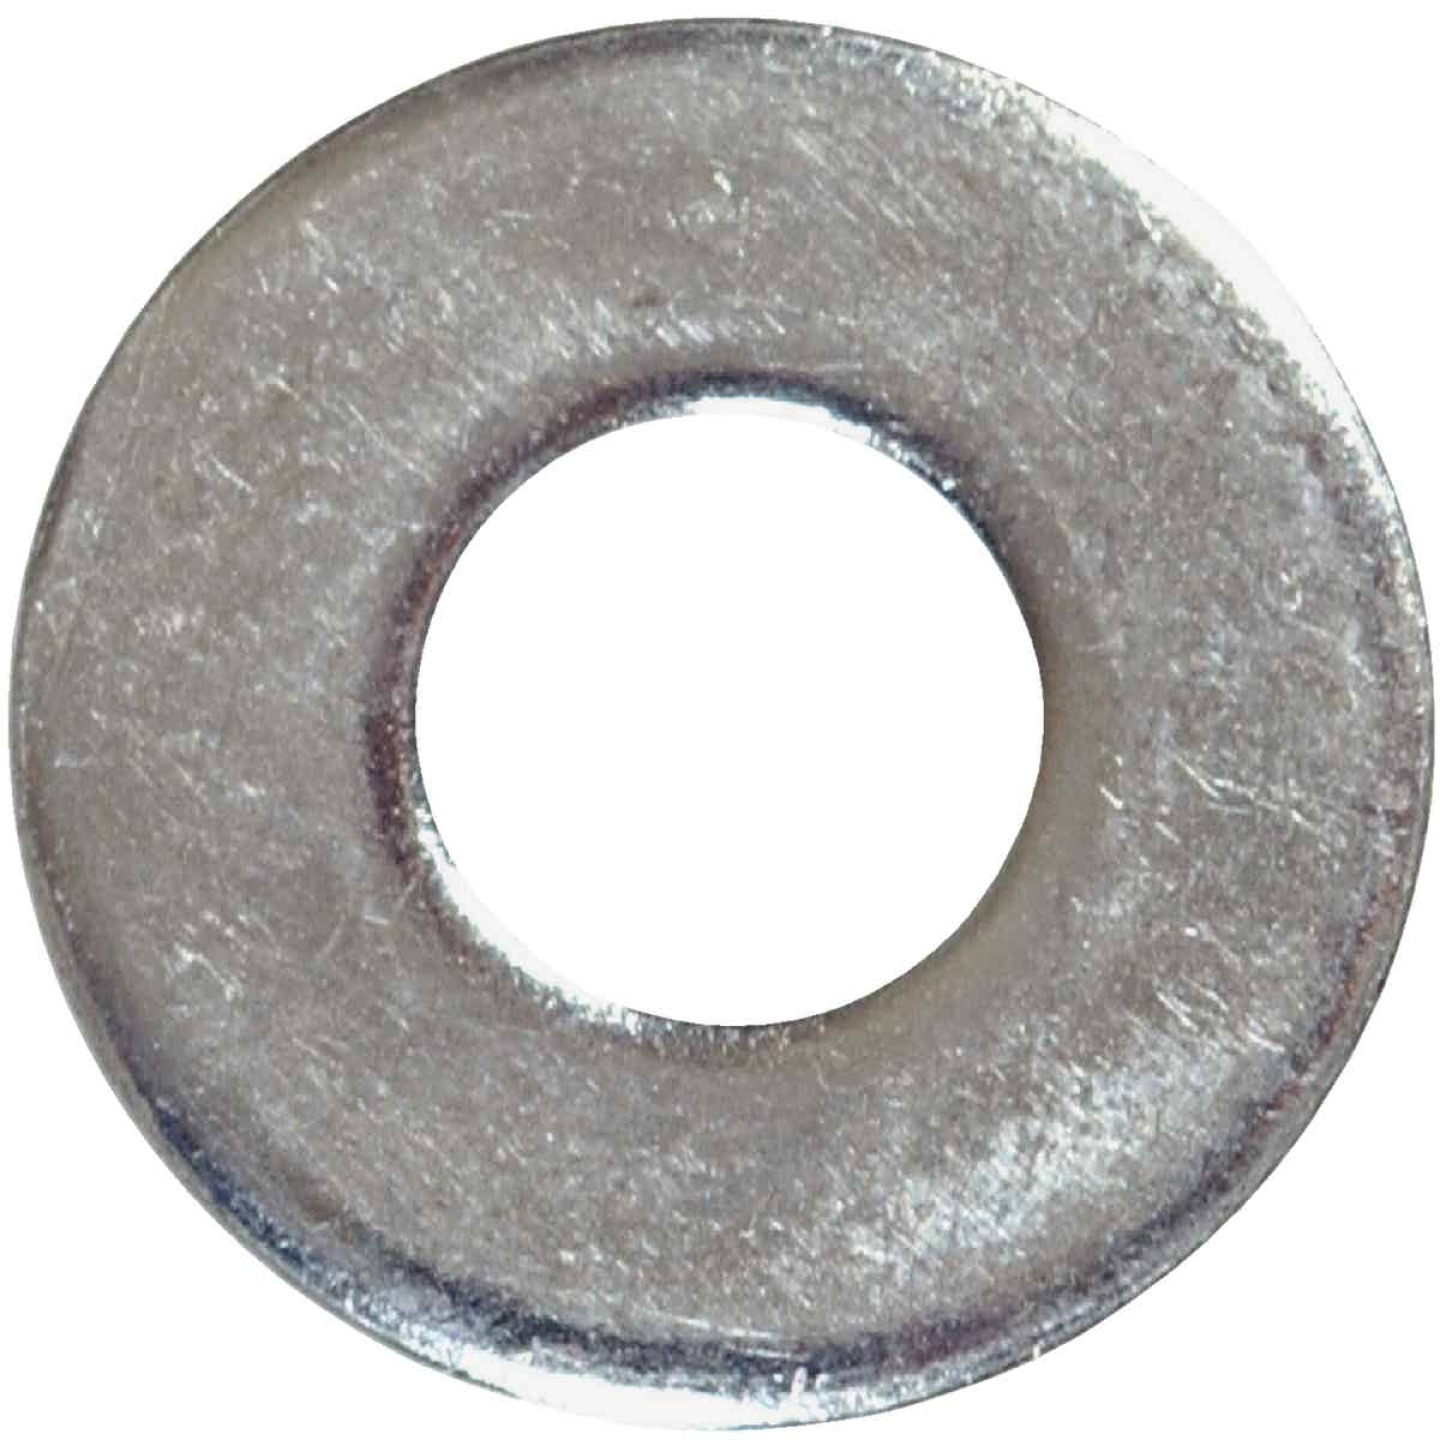 Hillman 7/16 In. Steel Zinc Plated Flat USS Washer (205 Ct., 5 Lb.) Image 1